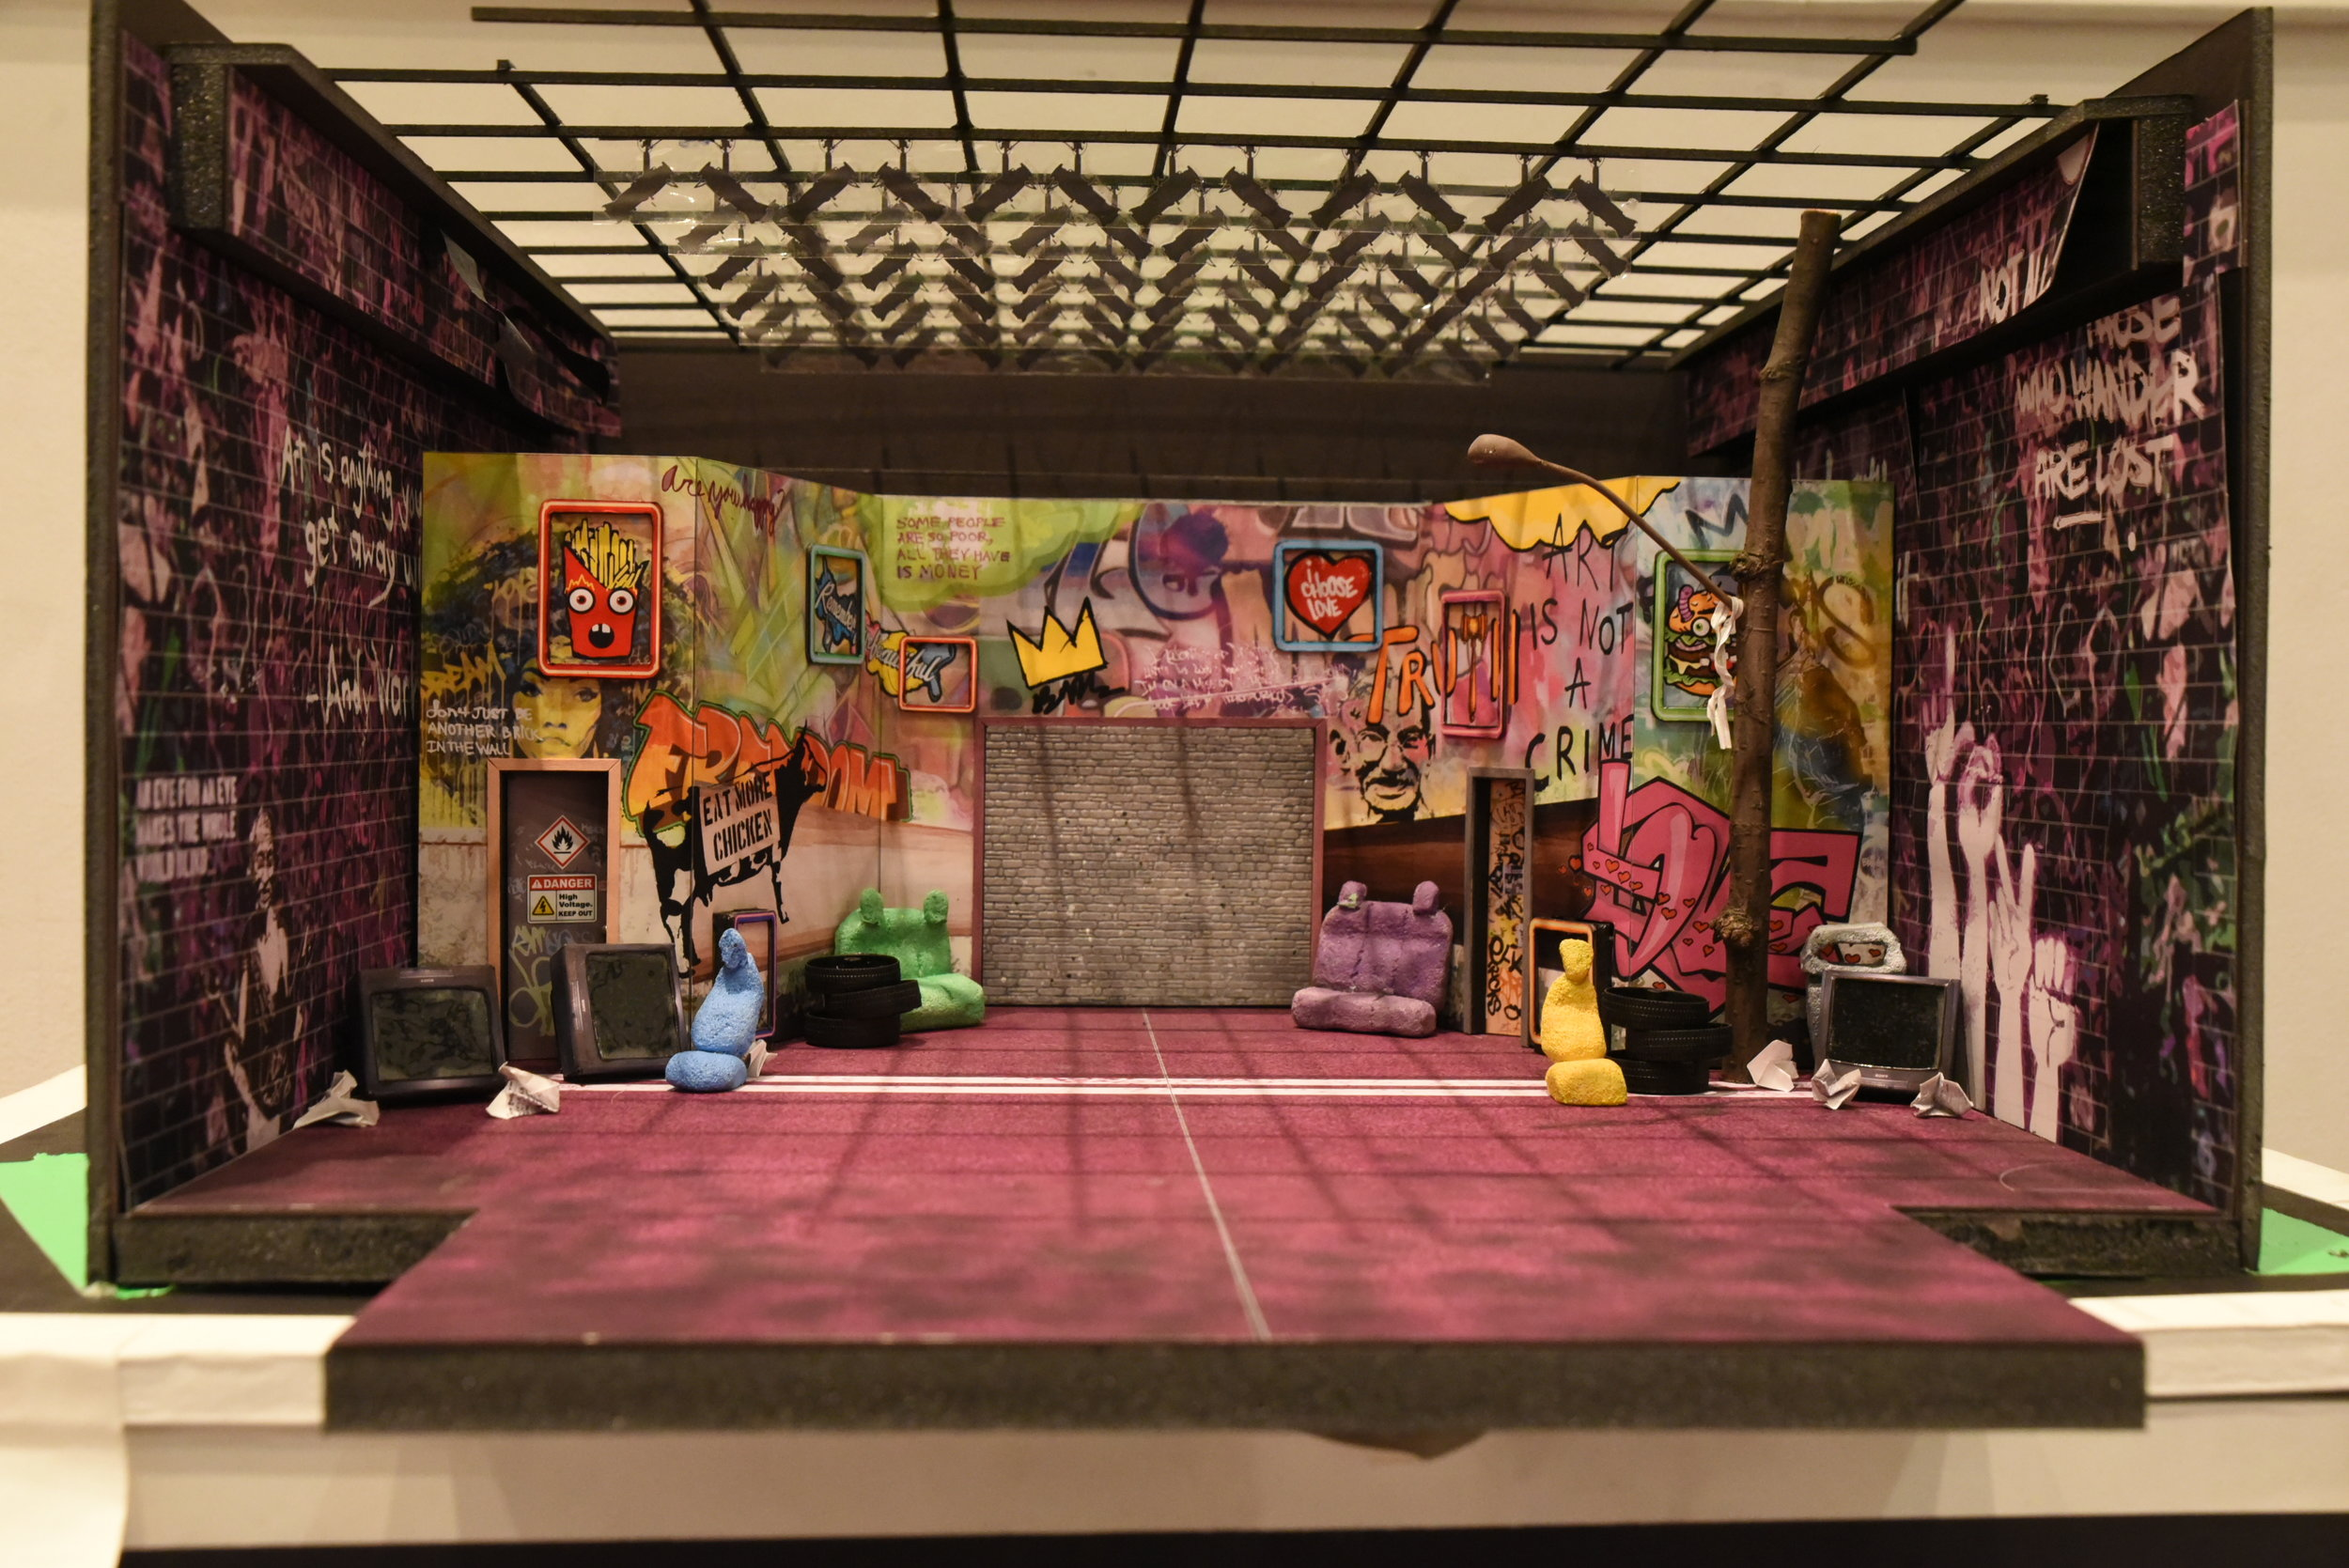 Set design by Nate Bertone